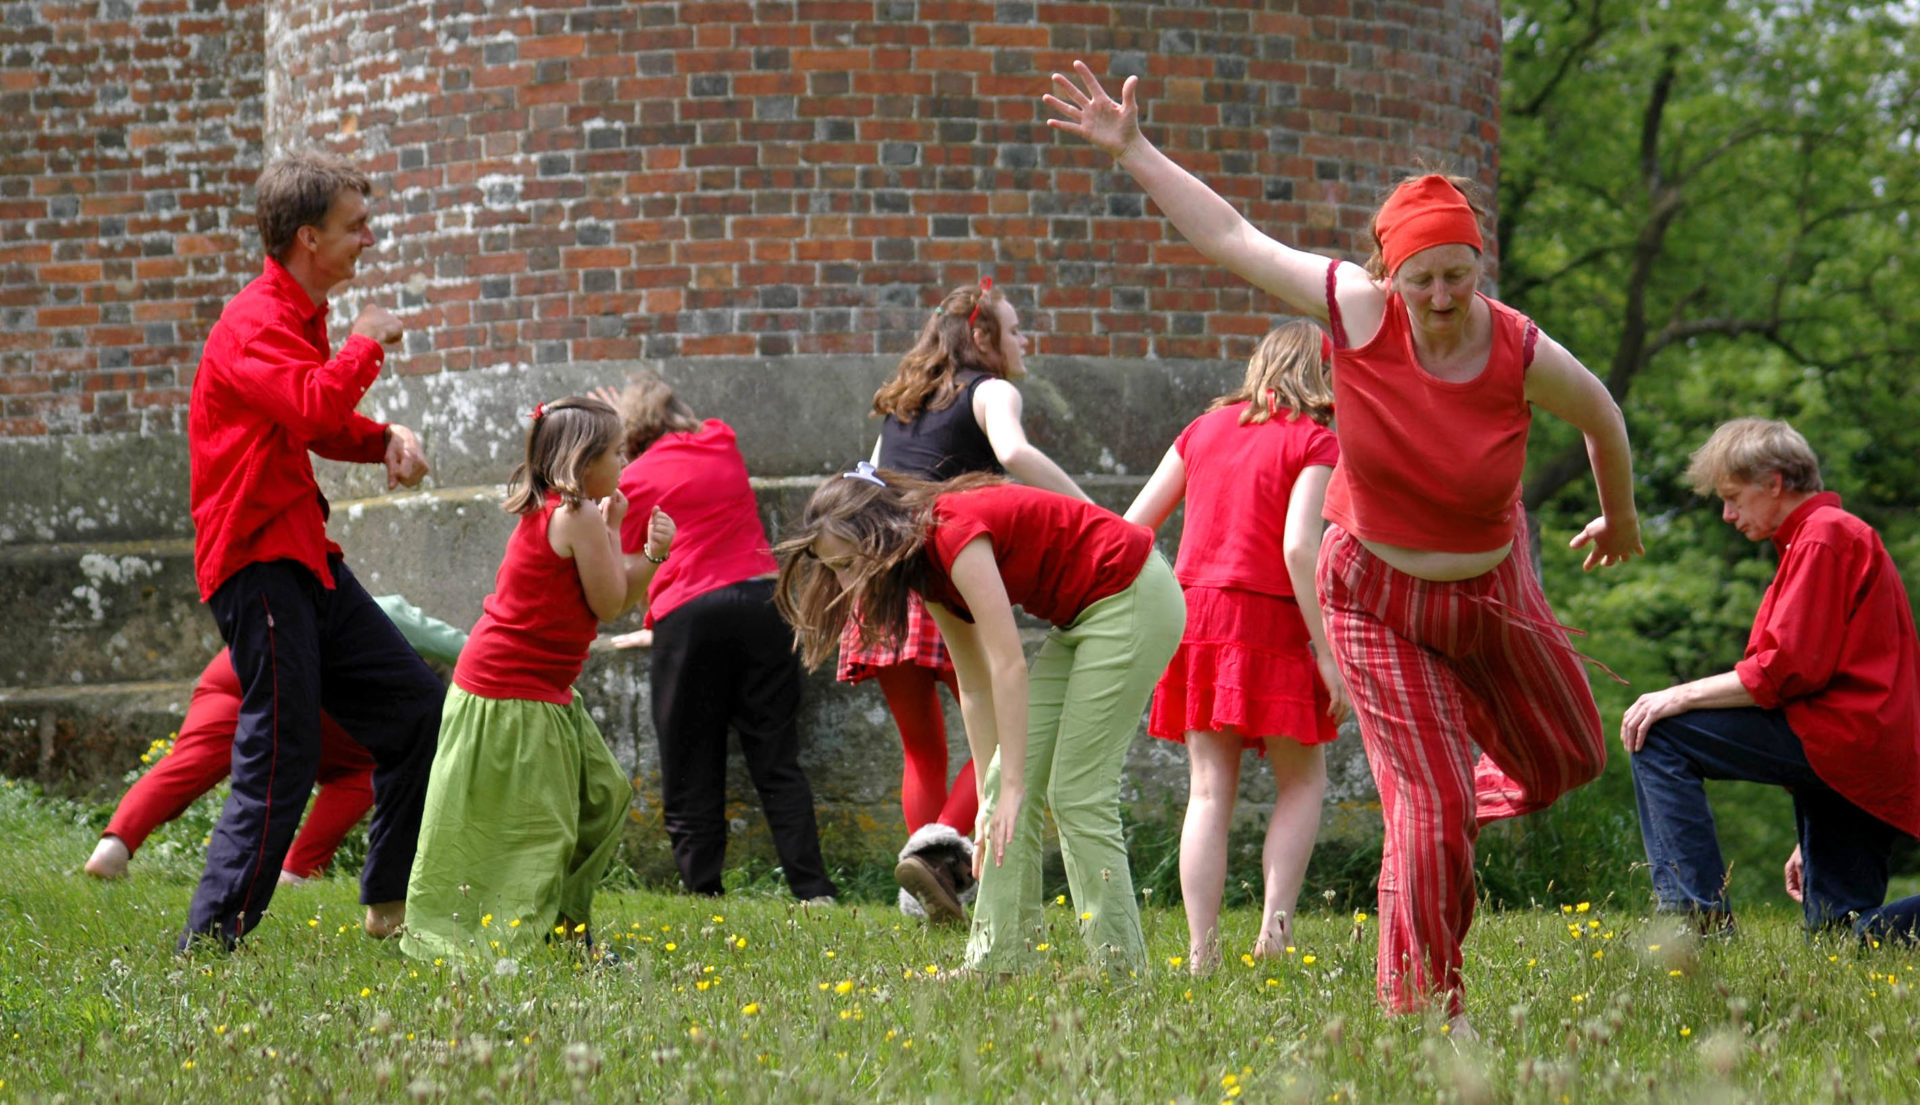 Dancers dressed in red